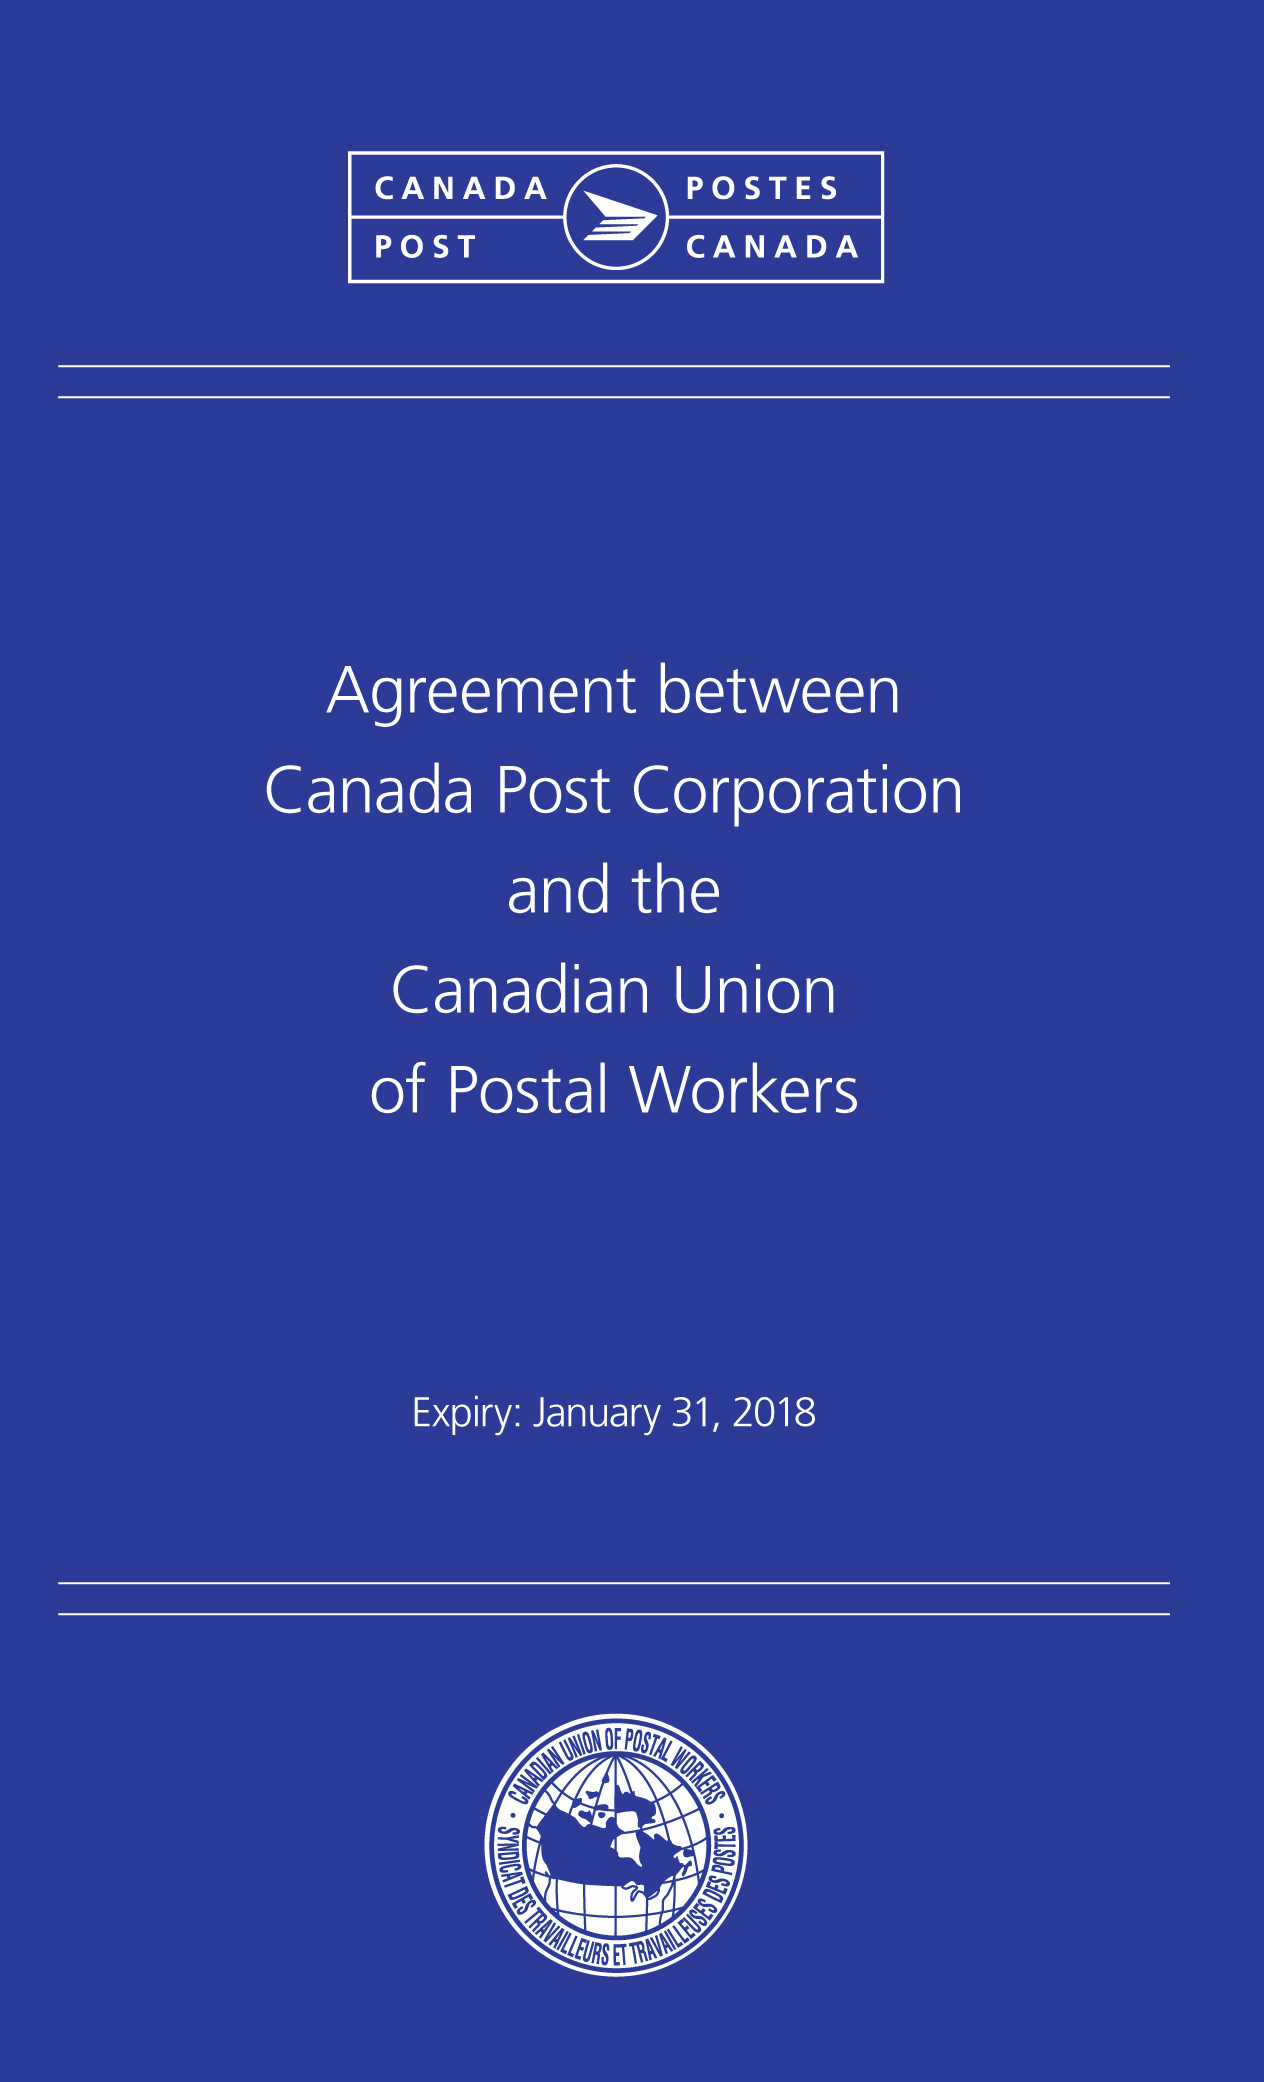 Agreement between Canada Post Corporation and the Canadian Union of Postal Workers - Urban Postal Operations (Expires: January 31, 2018)